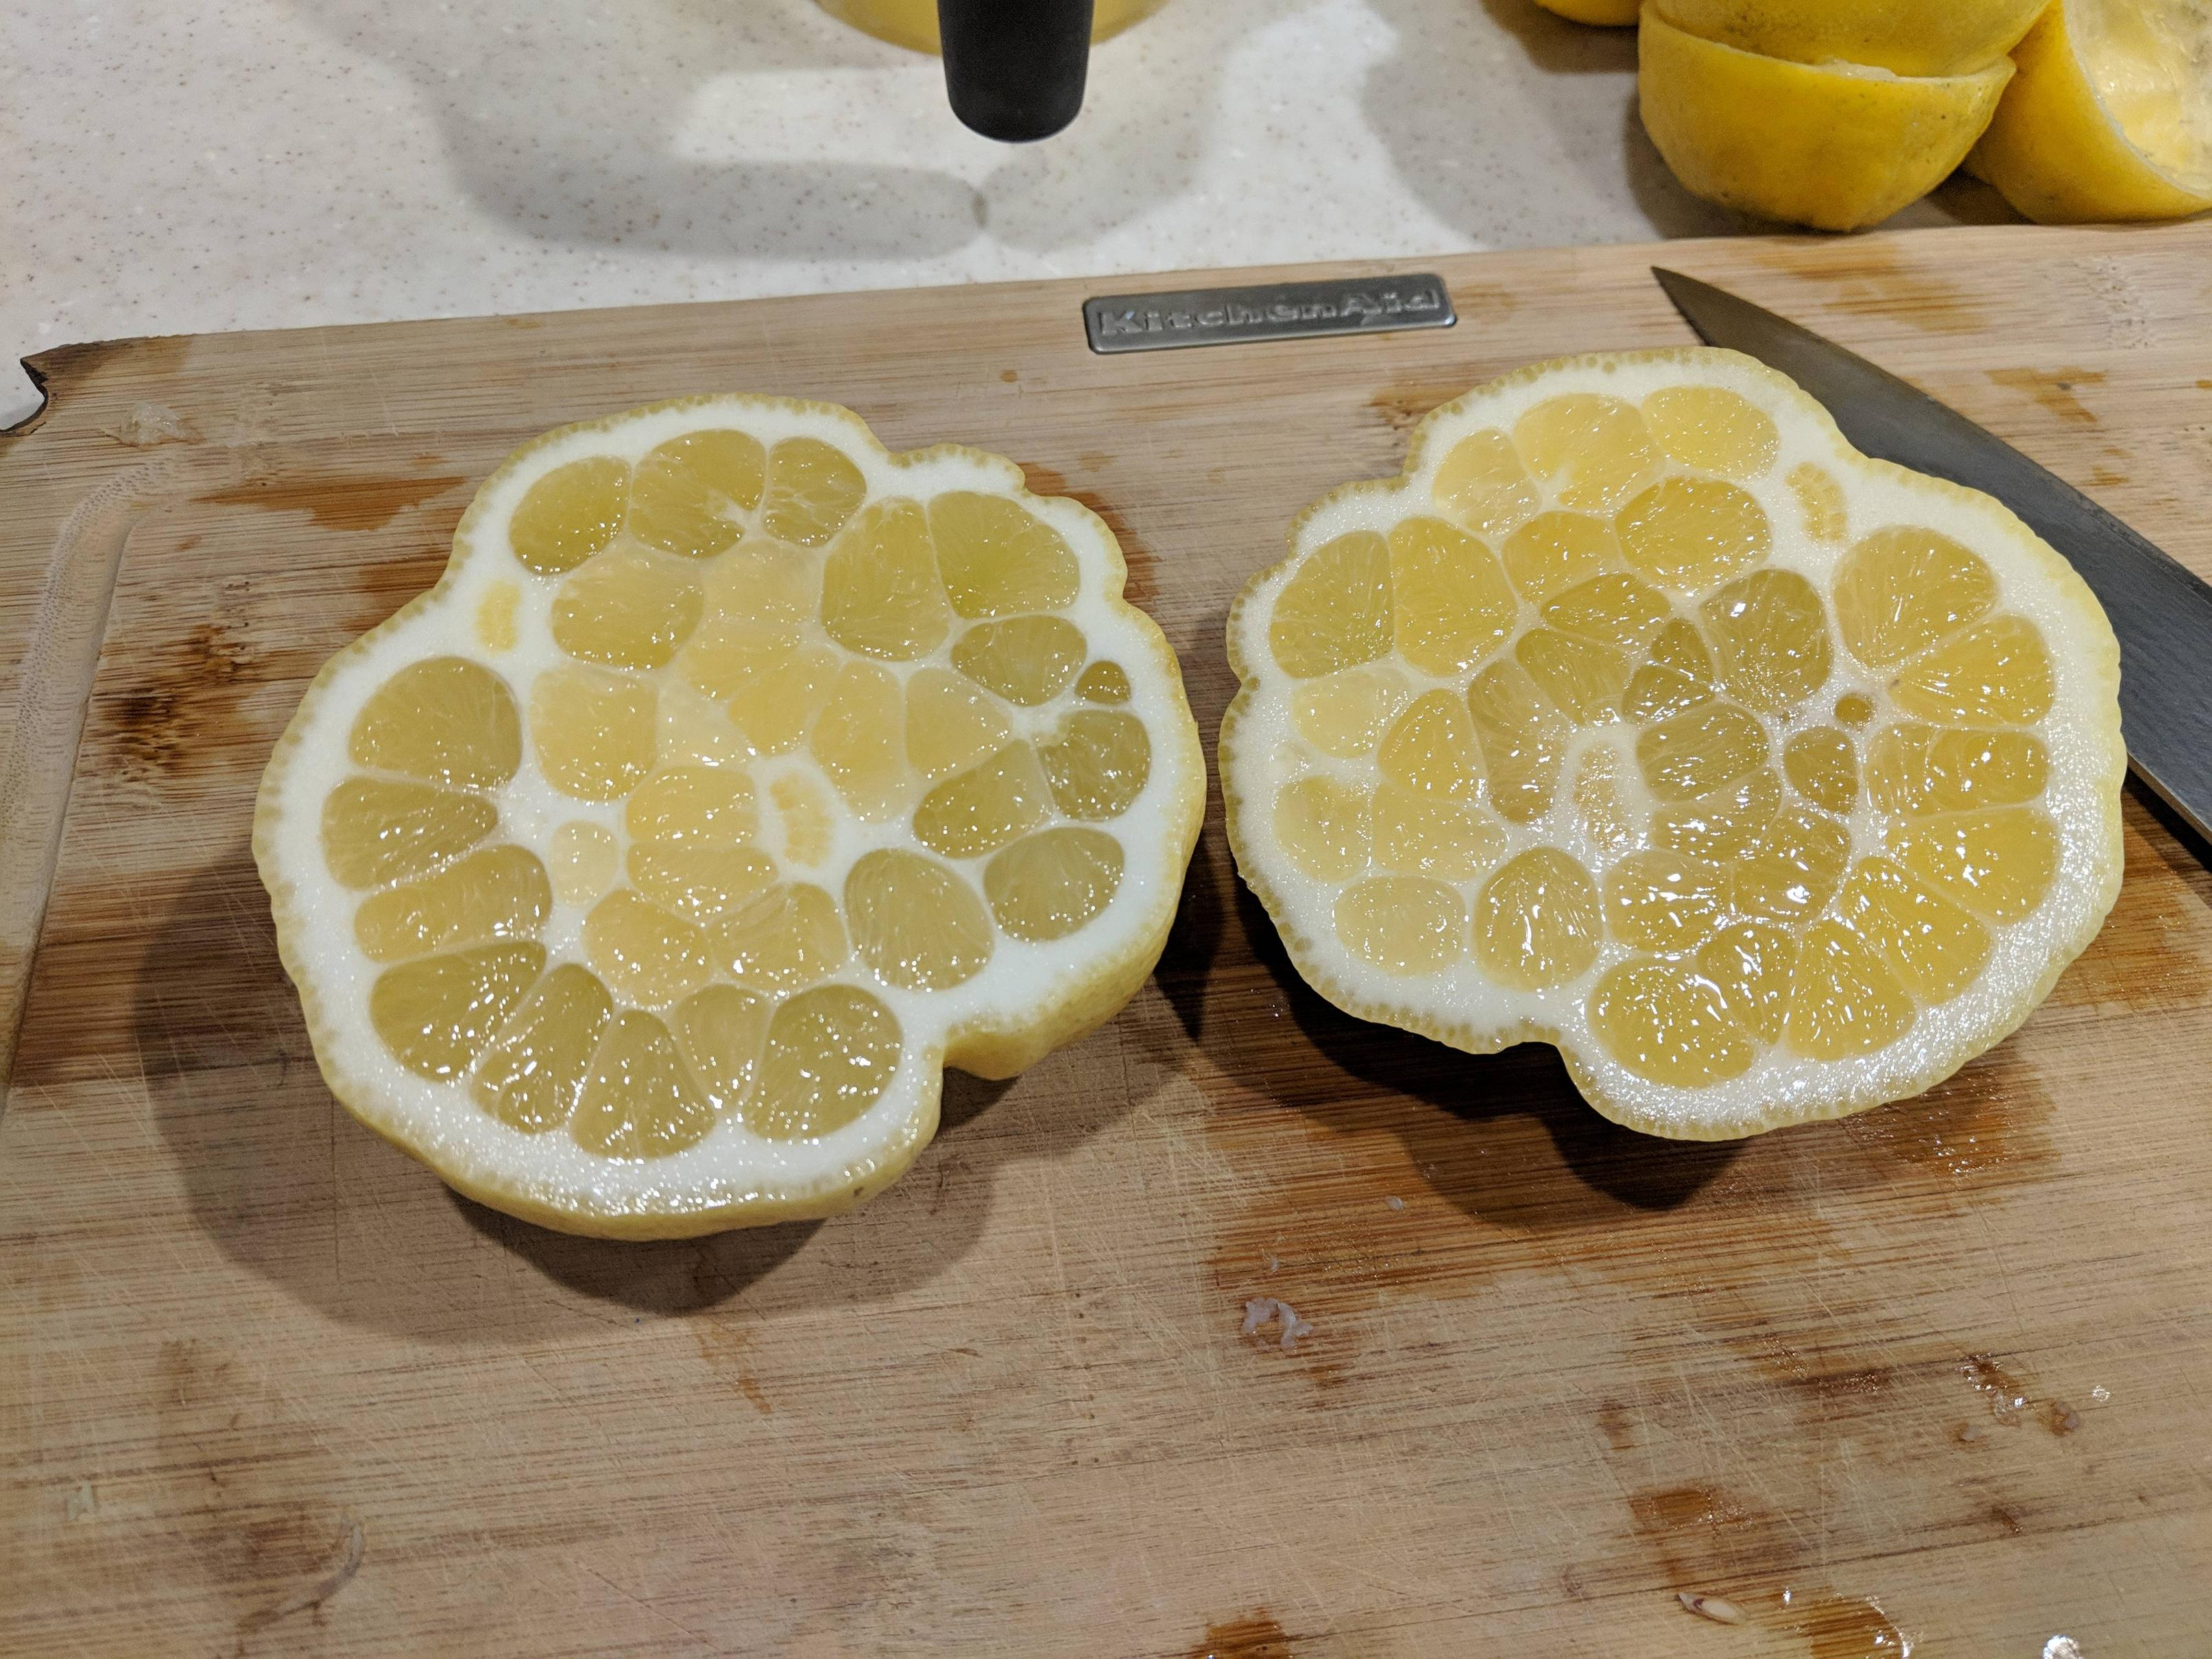 The inside of this lemon from my backyard